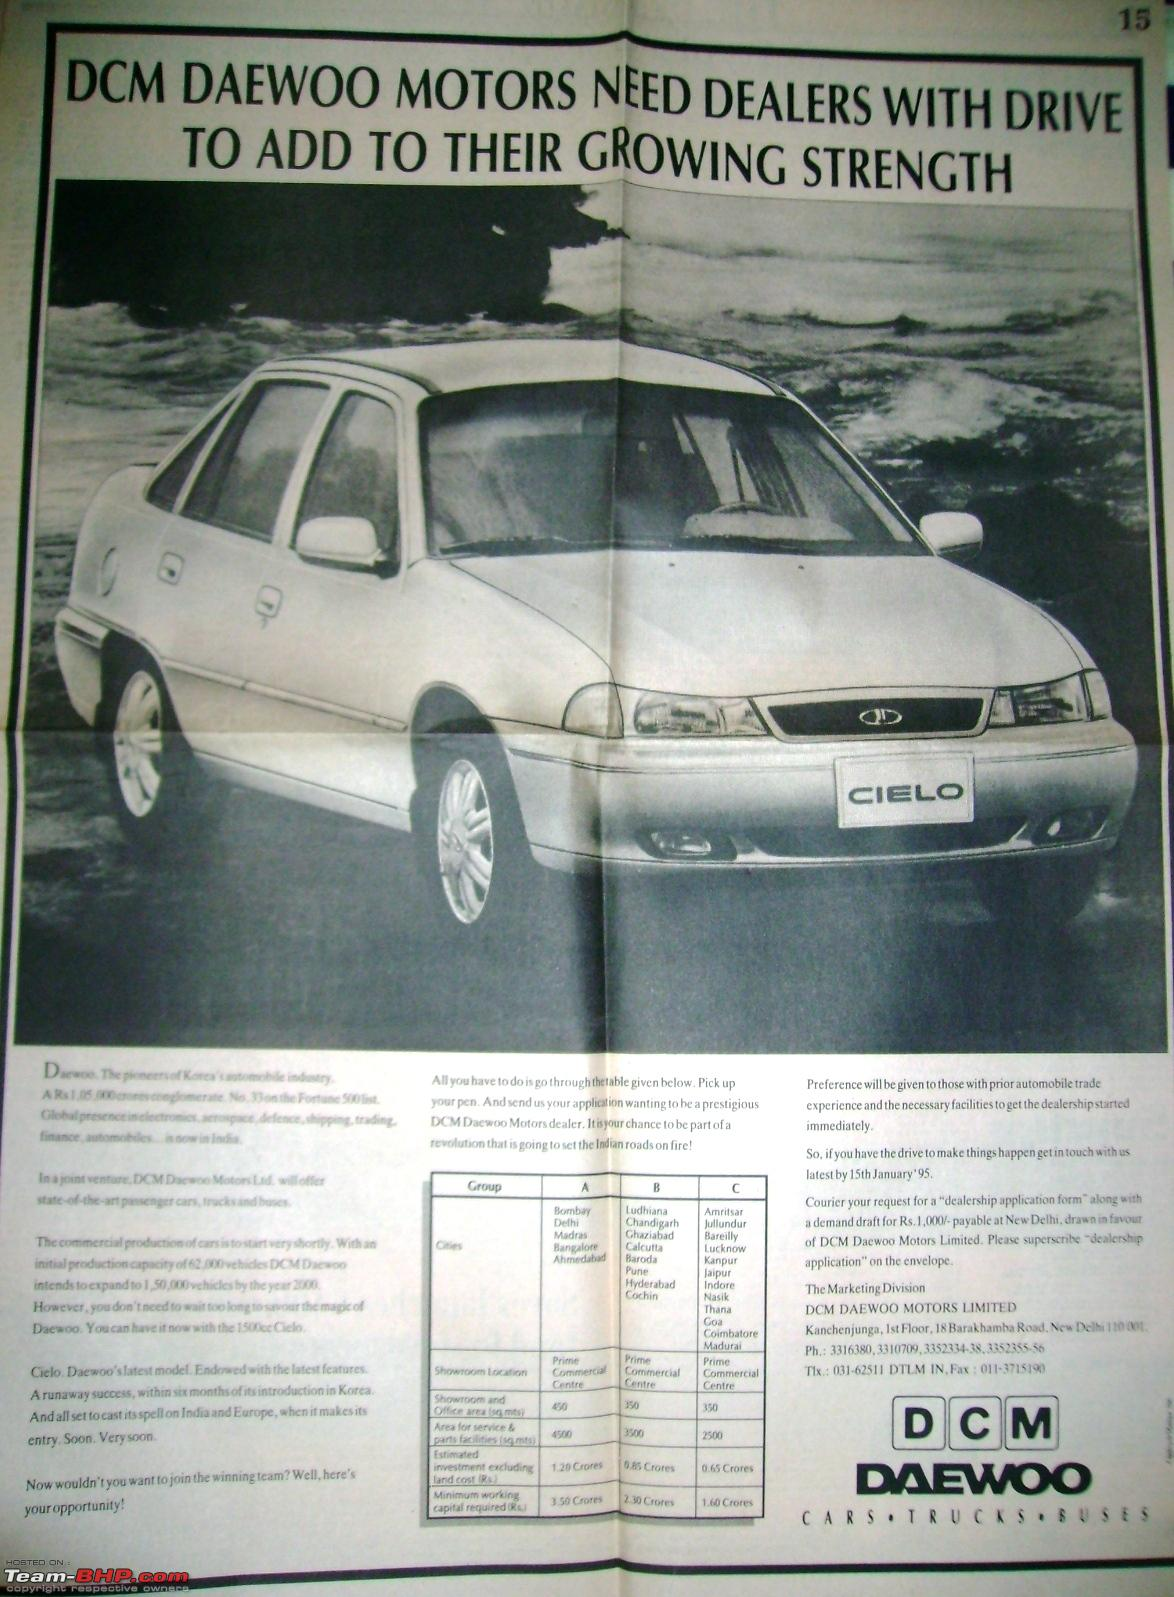 Cielo, Astra, Escort & other yesteryear Cars - Where have they ...